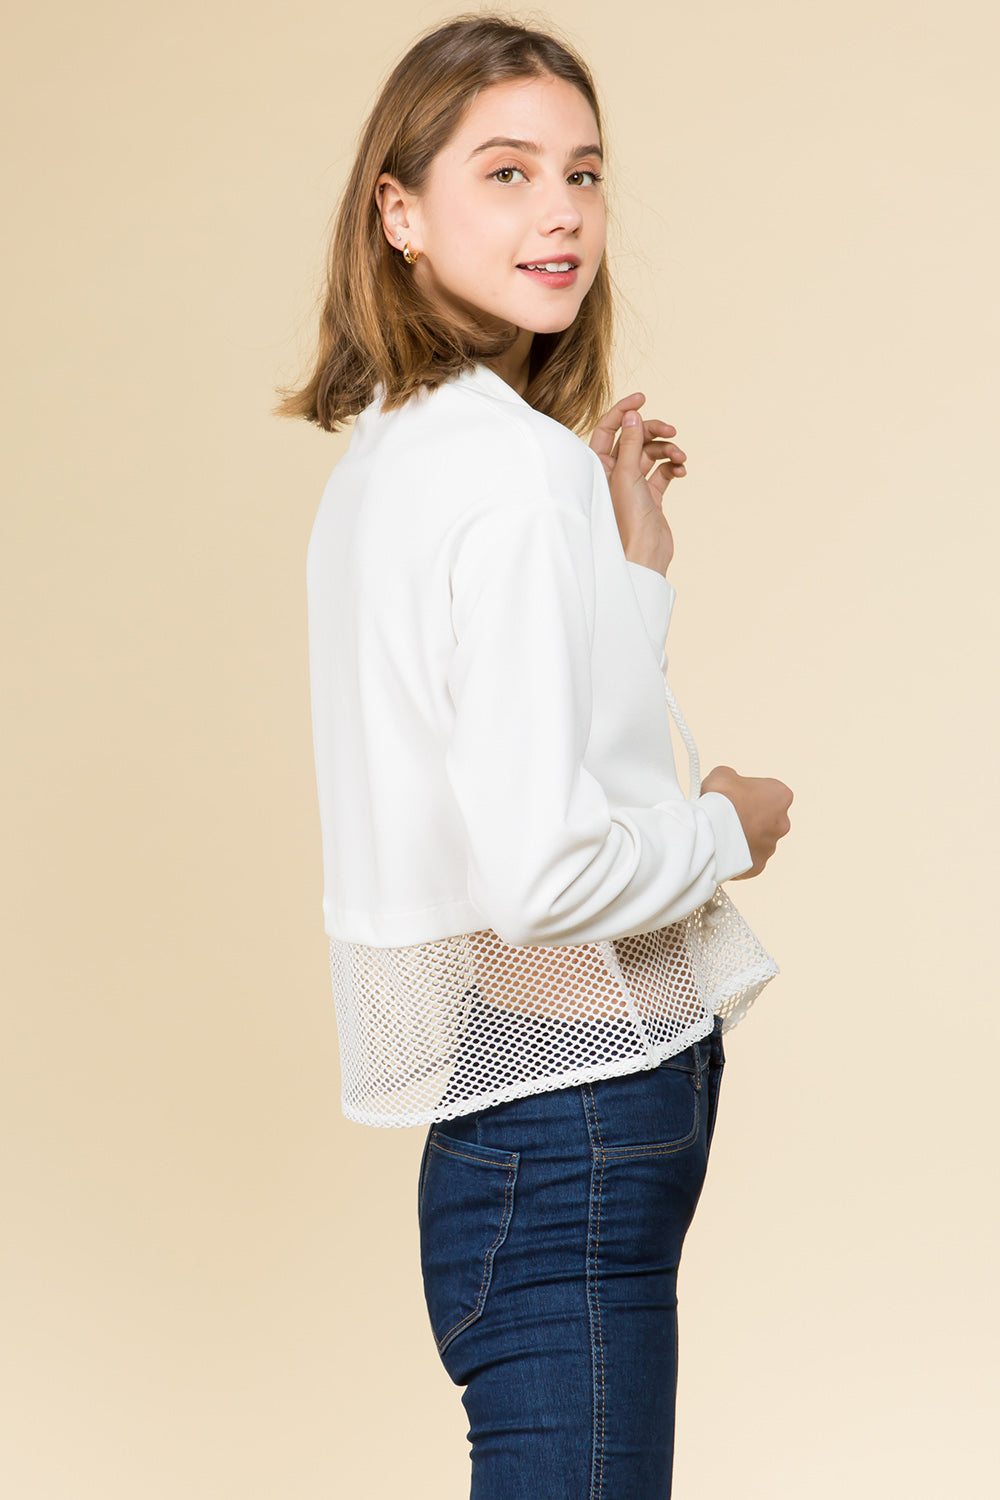 LONG CUFF SLEEVE HIGH NECK ZIPPER TOP WITH MESH